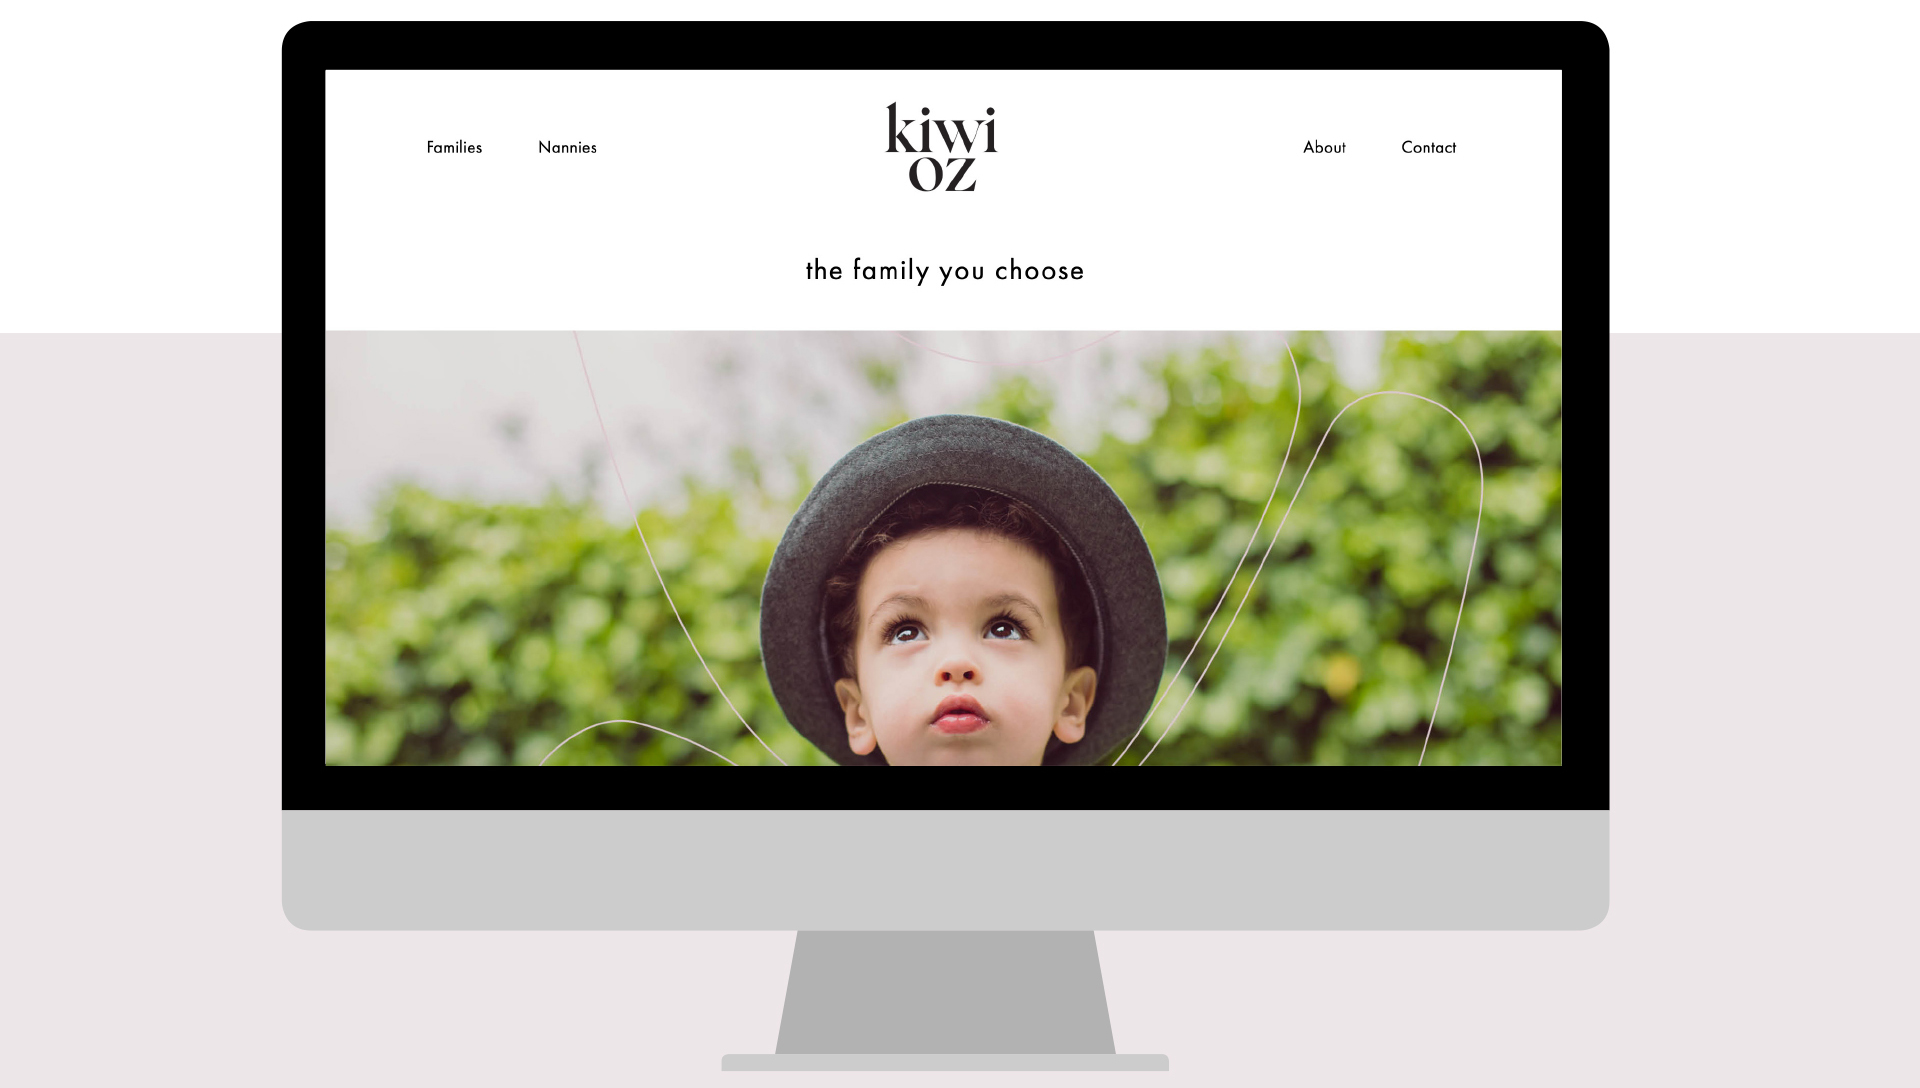 Cousin Branding designed and built the KiwiOz Nannies website